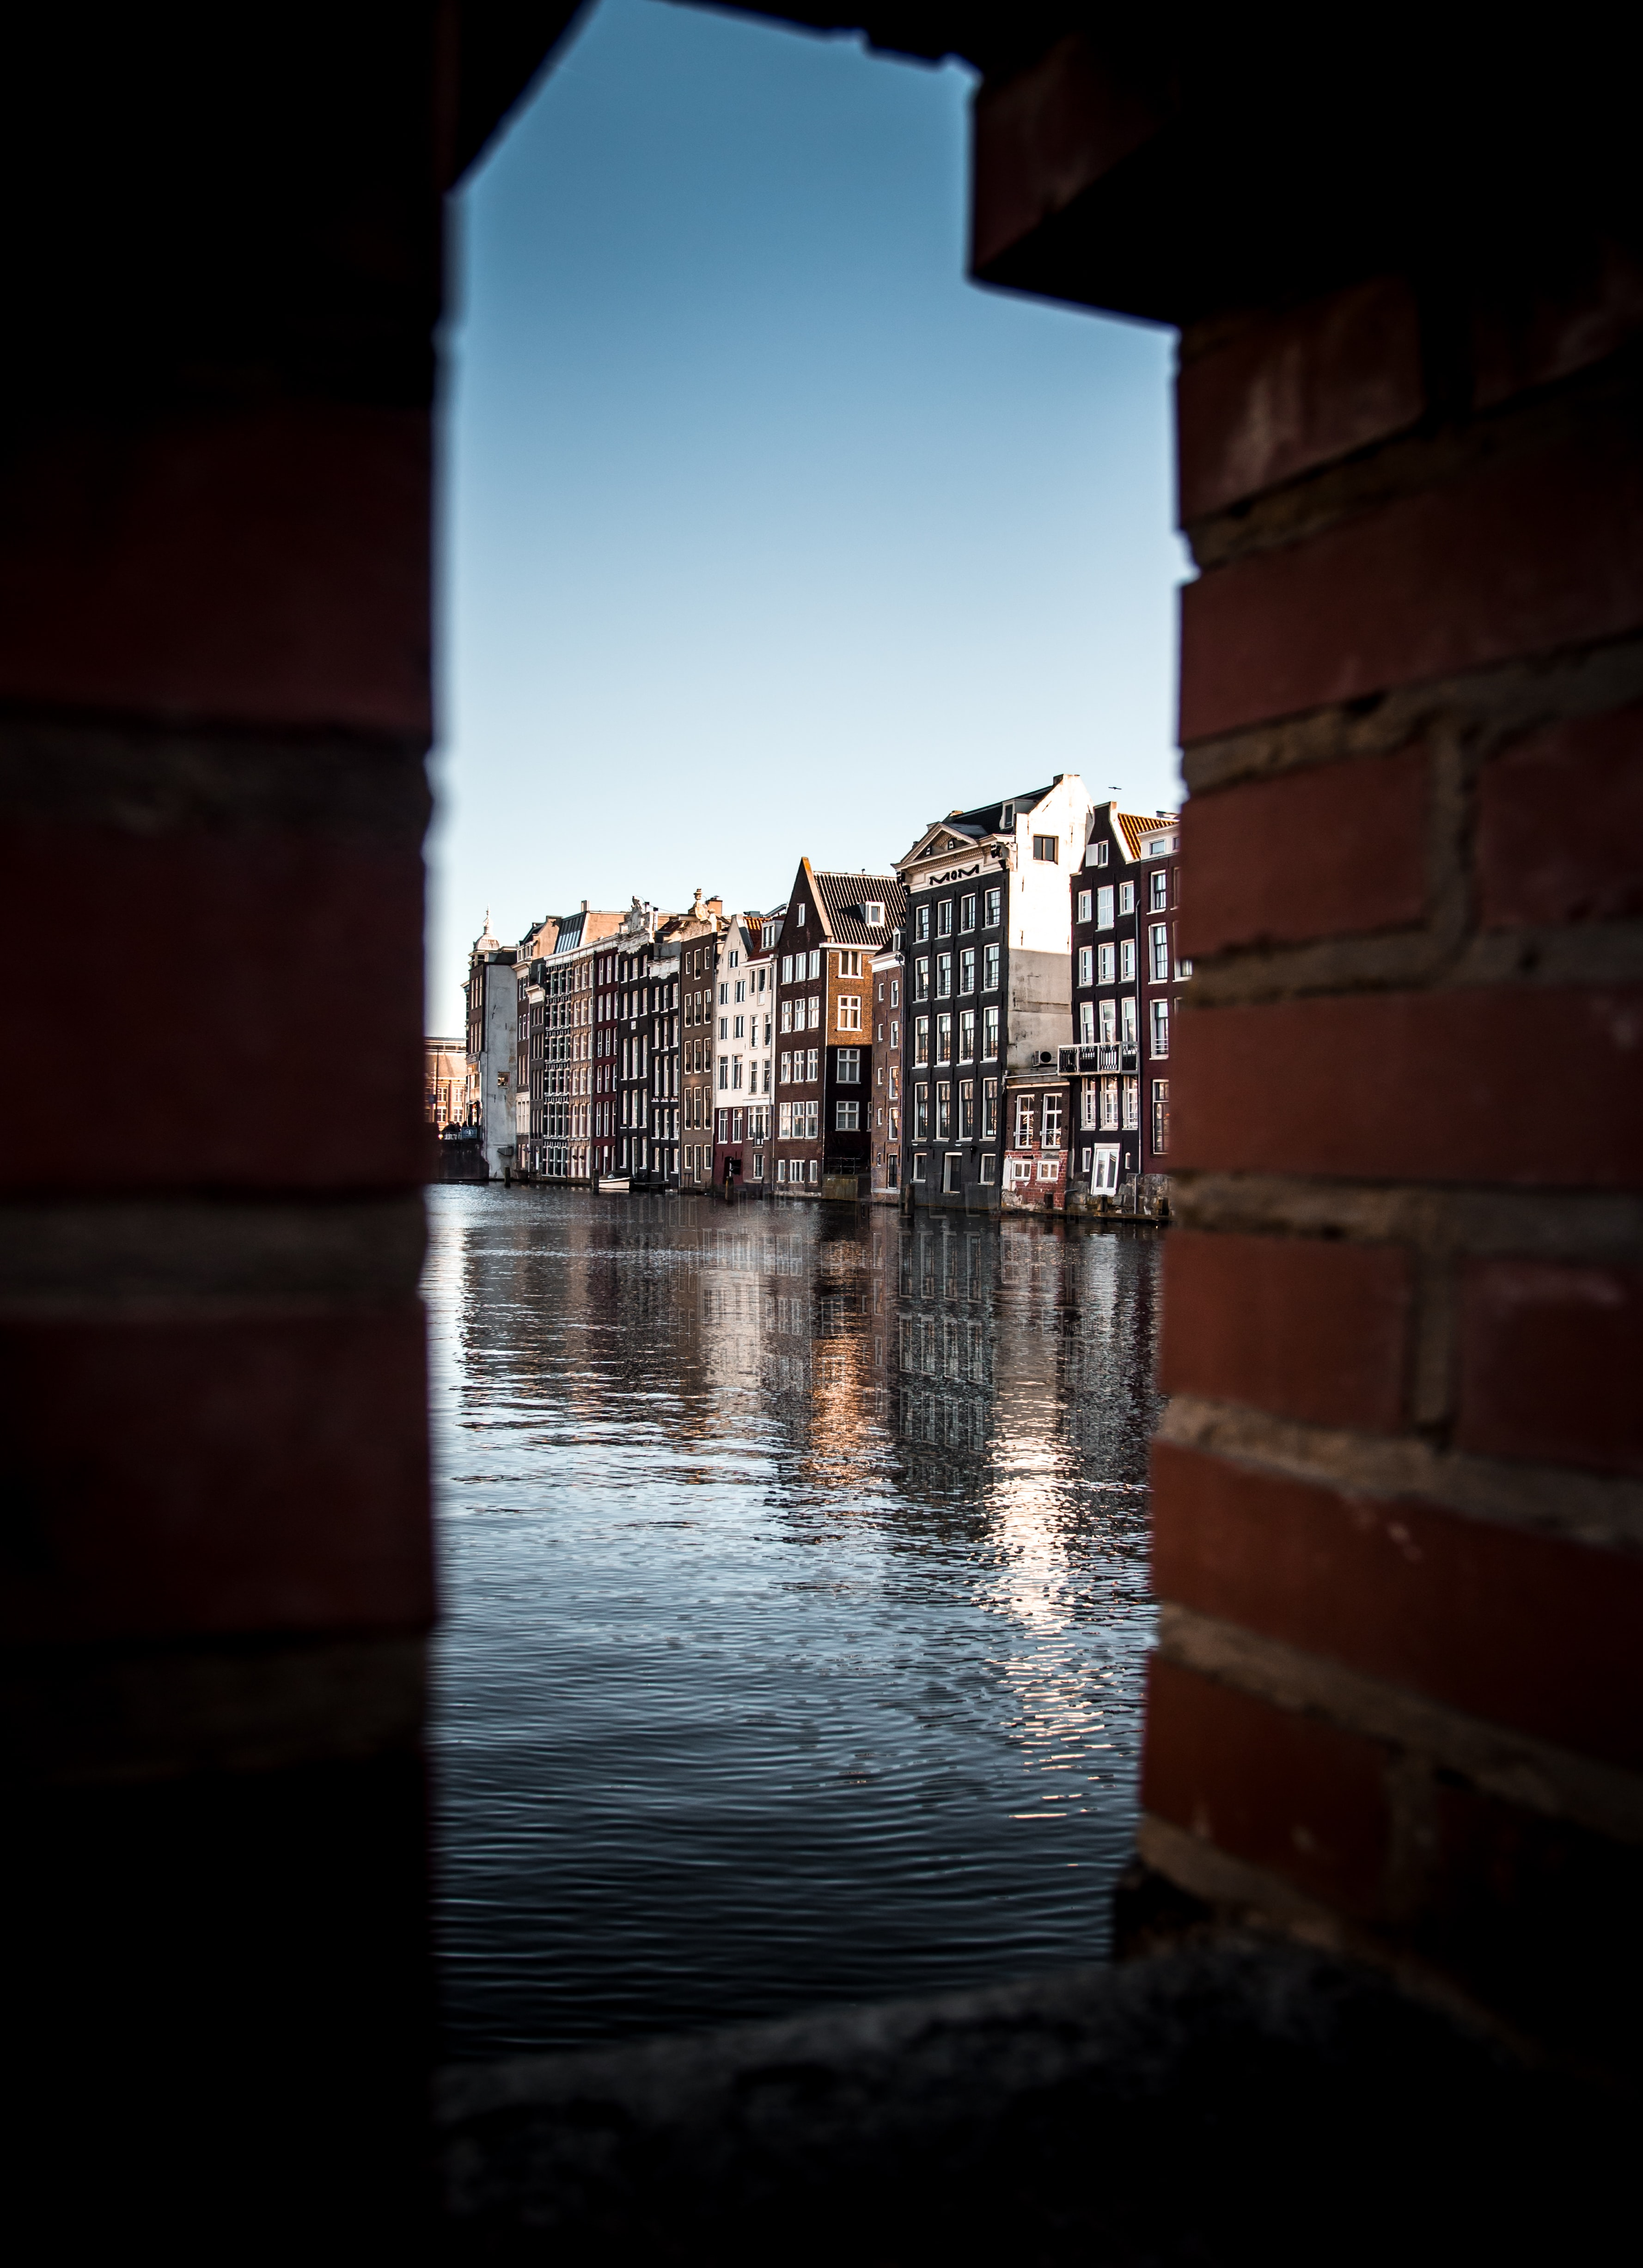 buildings near body of water